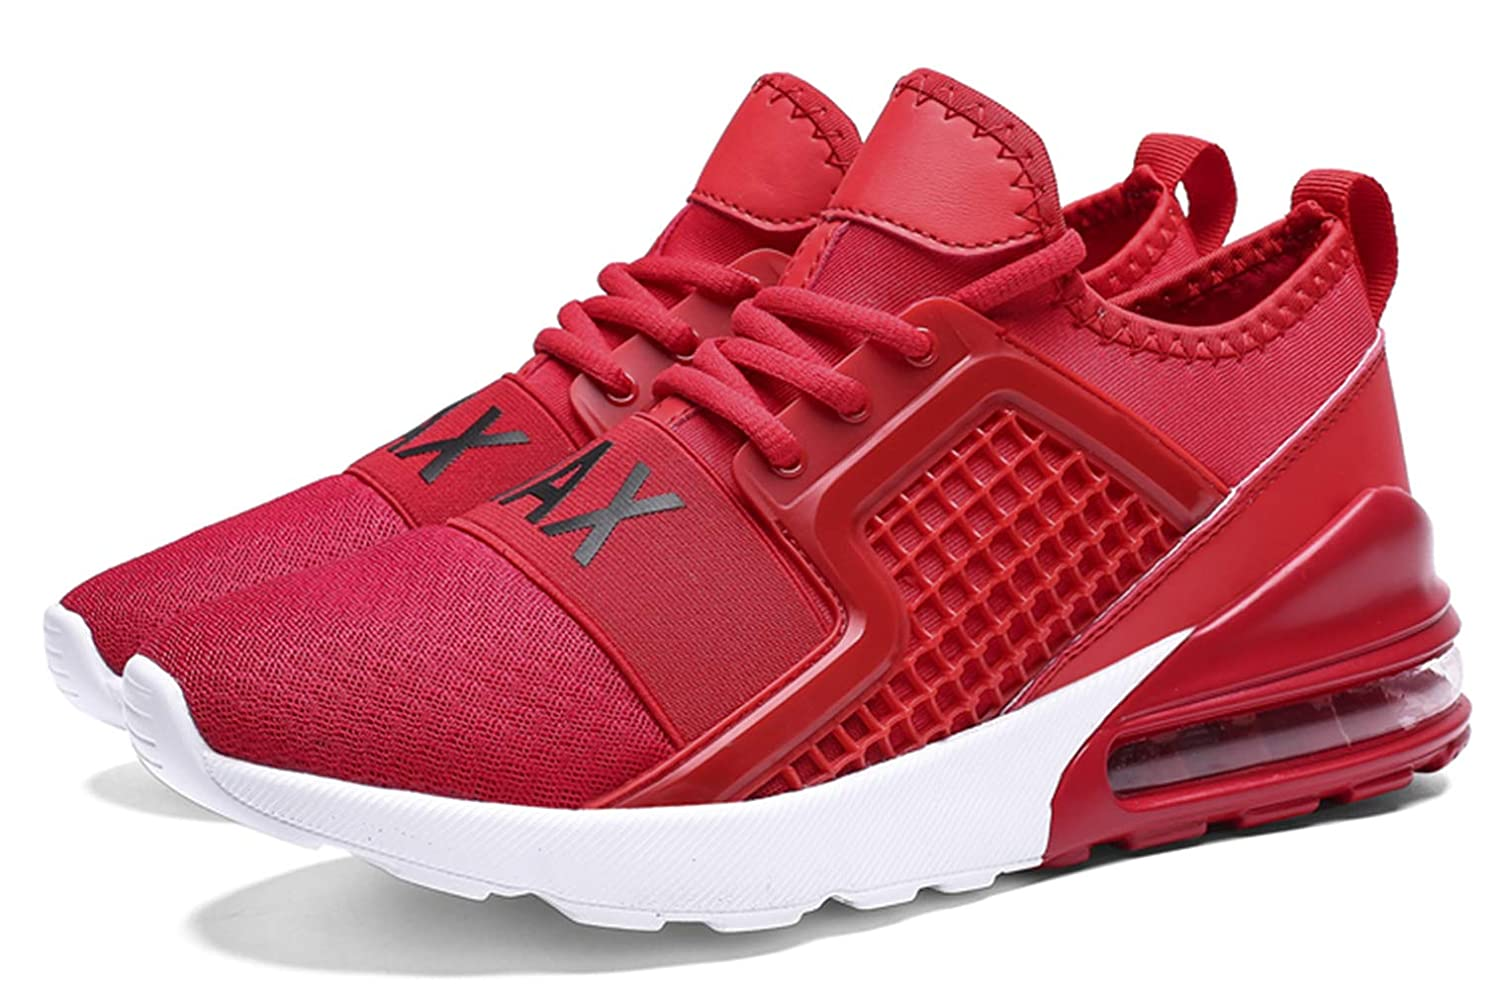 TSIODFO Mens Trail Running Shoes Lightweight Breathable Comfort Fashion Sneakers Youth Big Boys Tennis Shoes red White Black